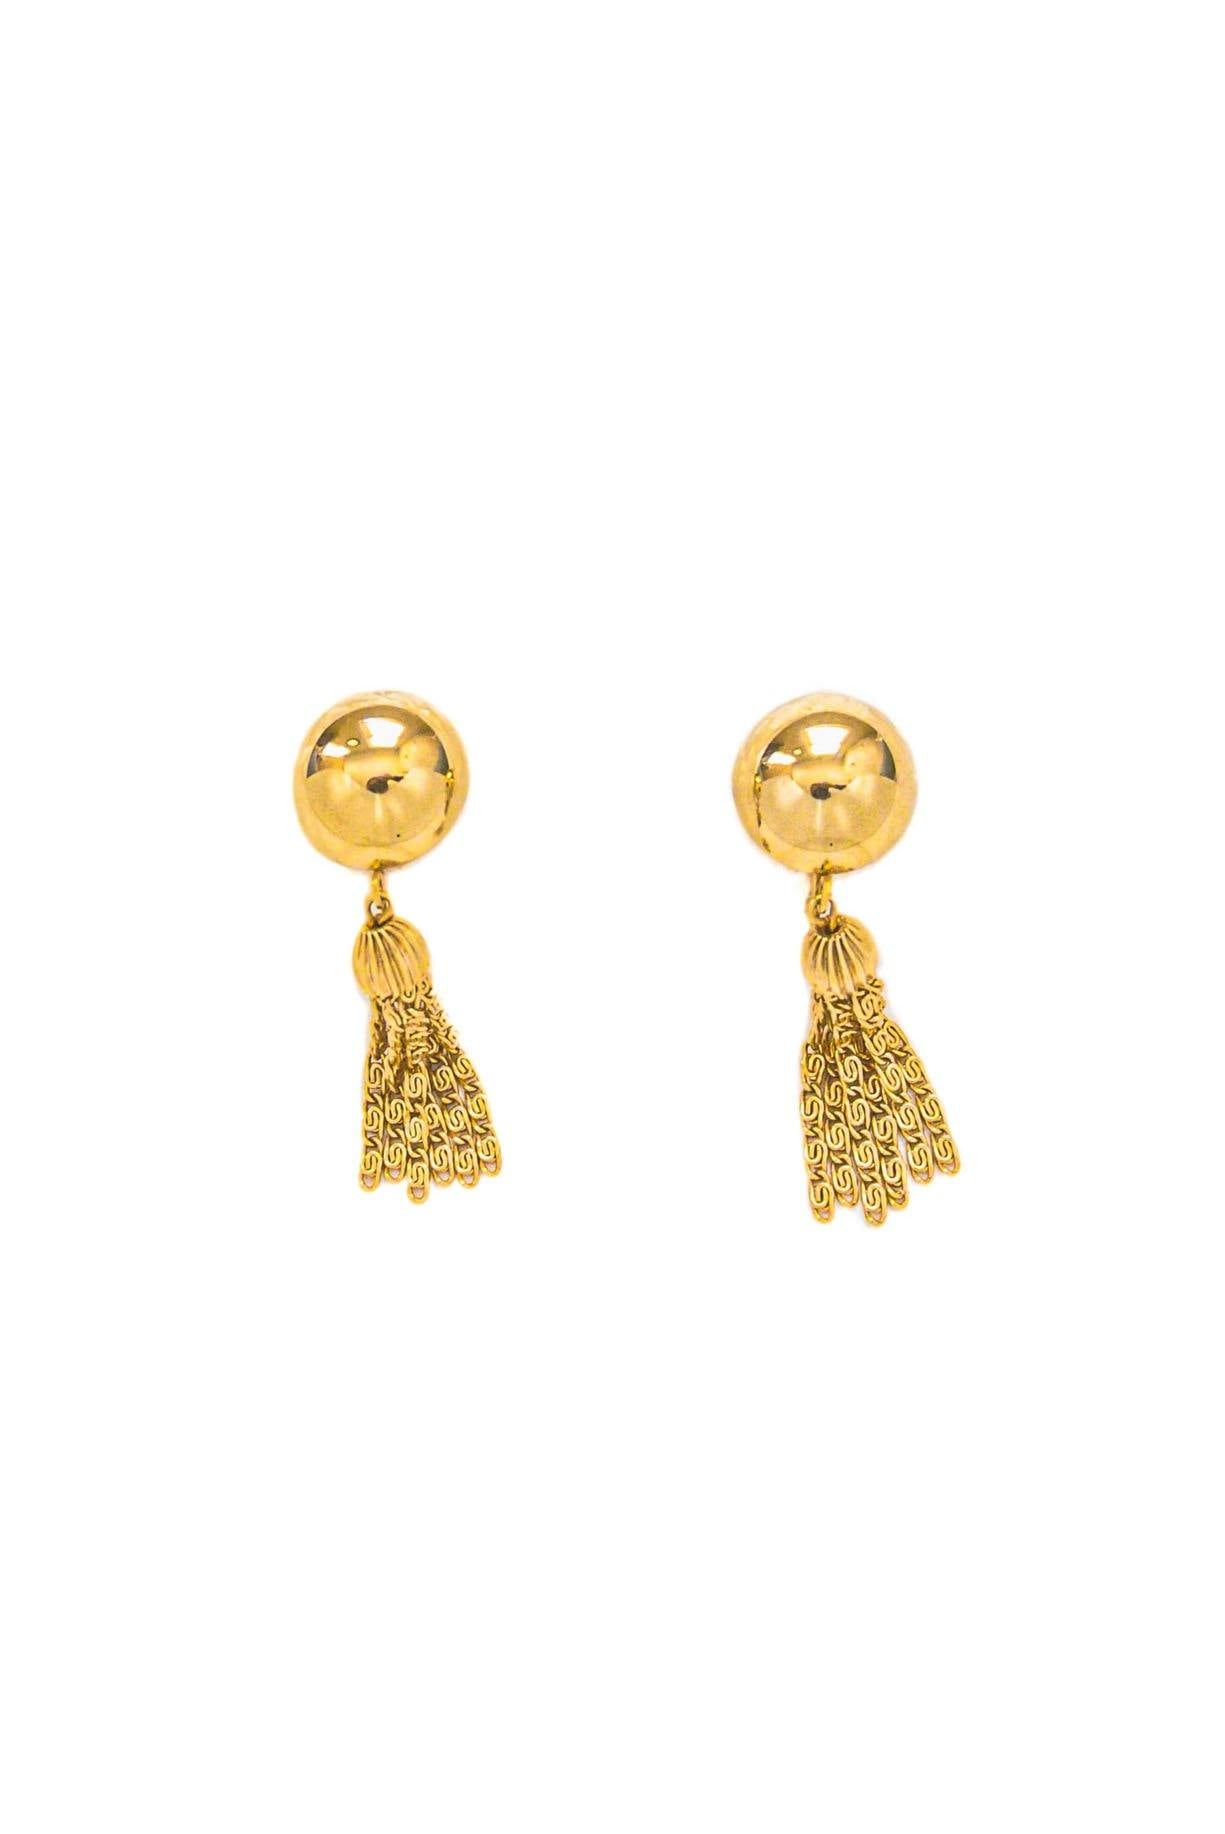 Vintage tassel earrings from Sweet & Spark.